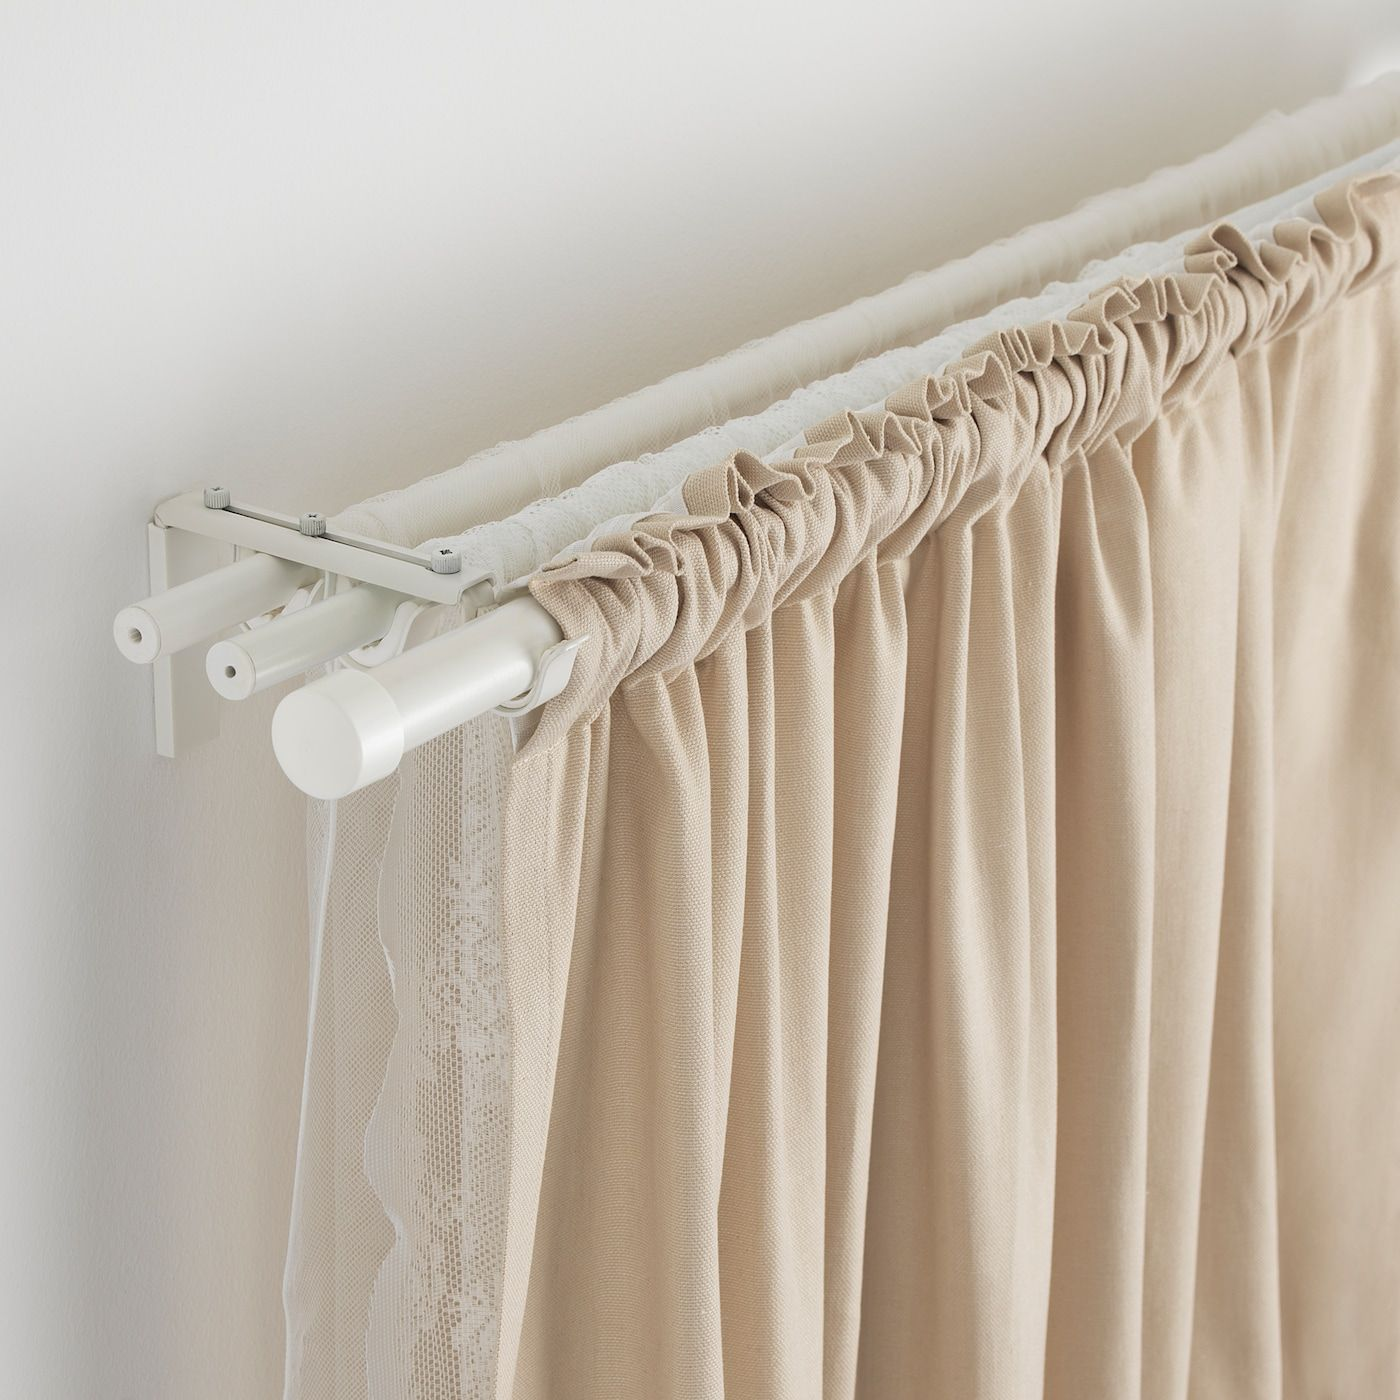 Ikea Hugad White Curtain Rod In 2020 Double Rod Curtains Double